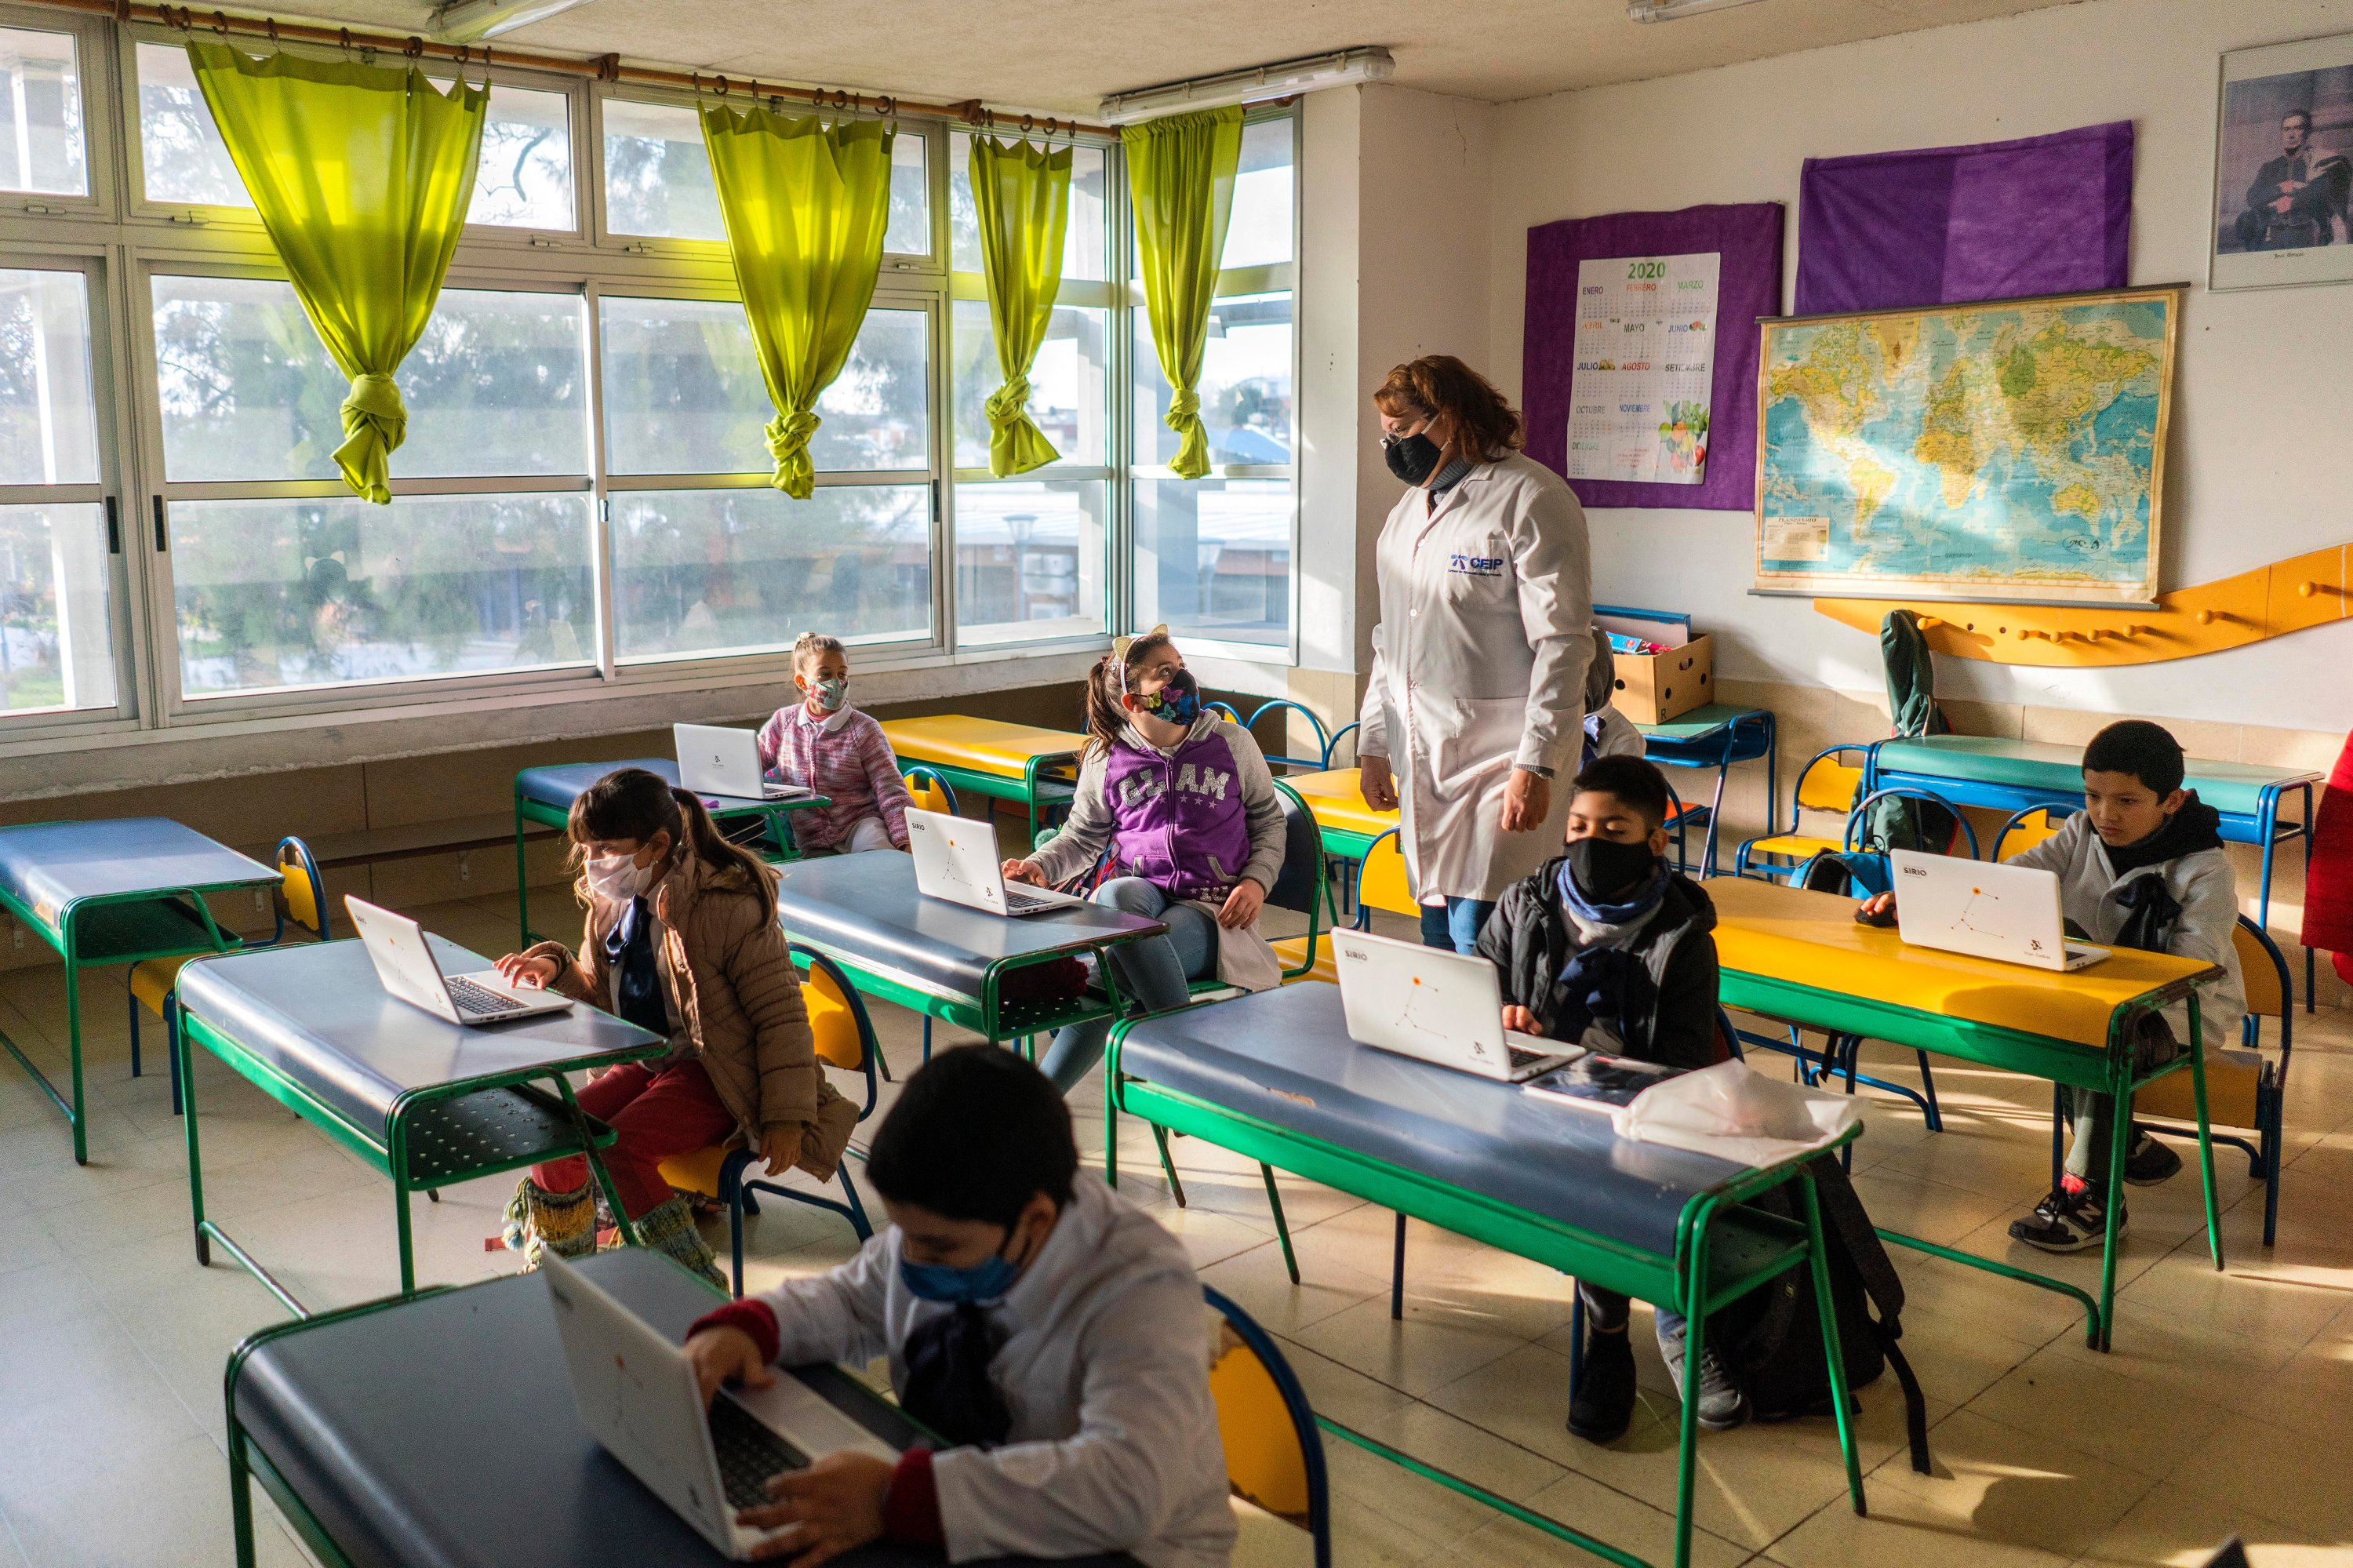 Students wearing protective face masks as a measure to curb the spread of the new coronavirus, attend class in a public school in Montevideo, Uruguay, Monday, June 15, 2020. (AP Photo)